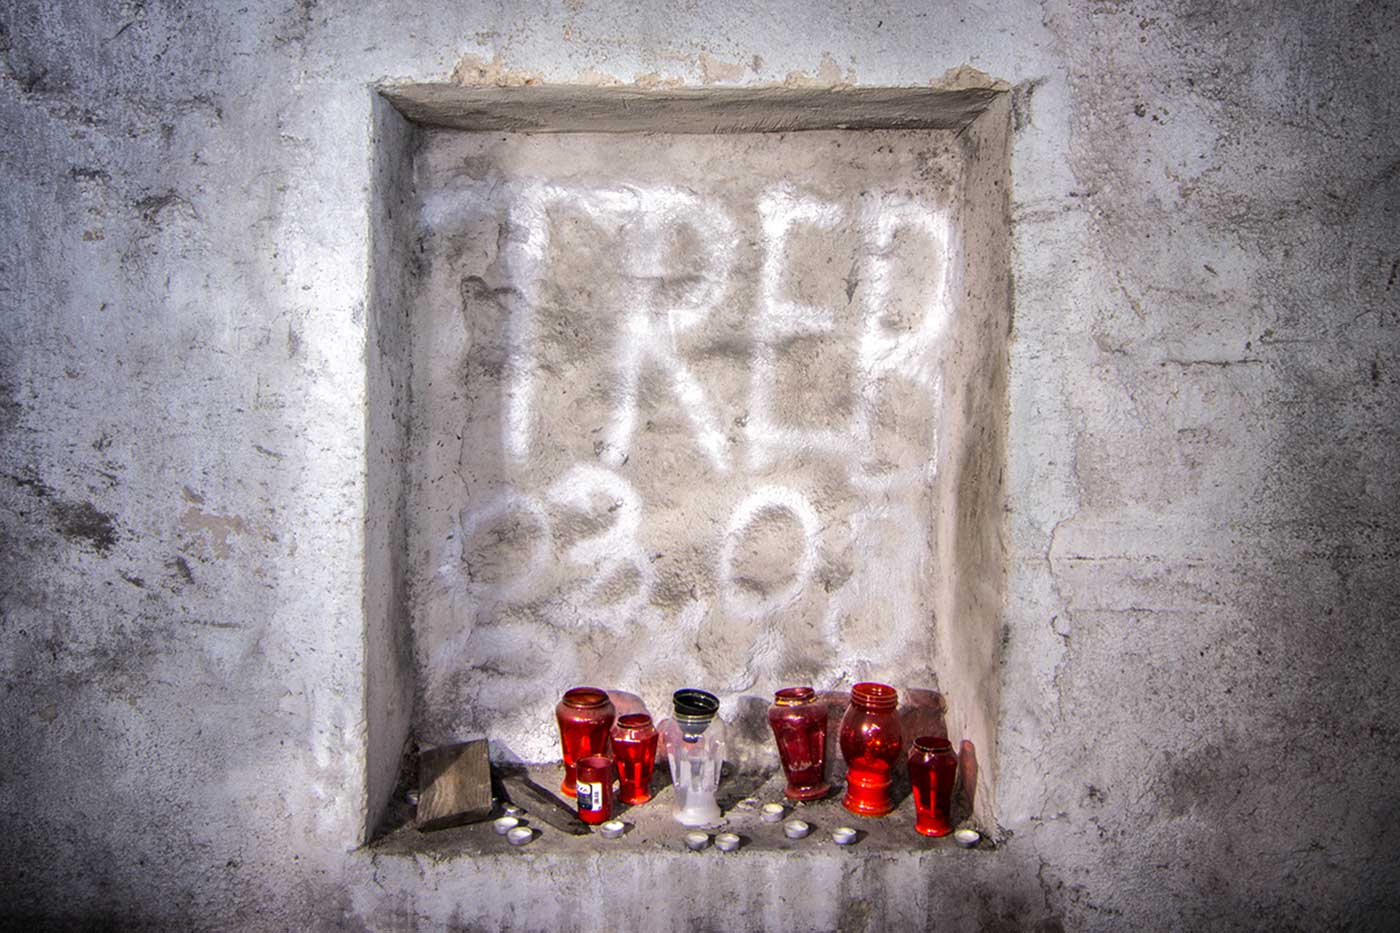 A memorial shrine set into a wall alcove deep within the 'KLEK' complex. Željava Airbase, Croatia.